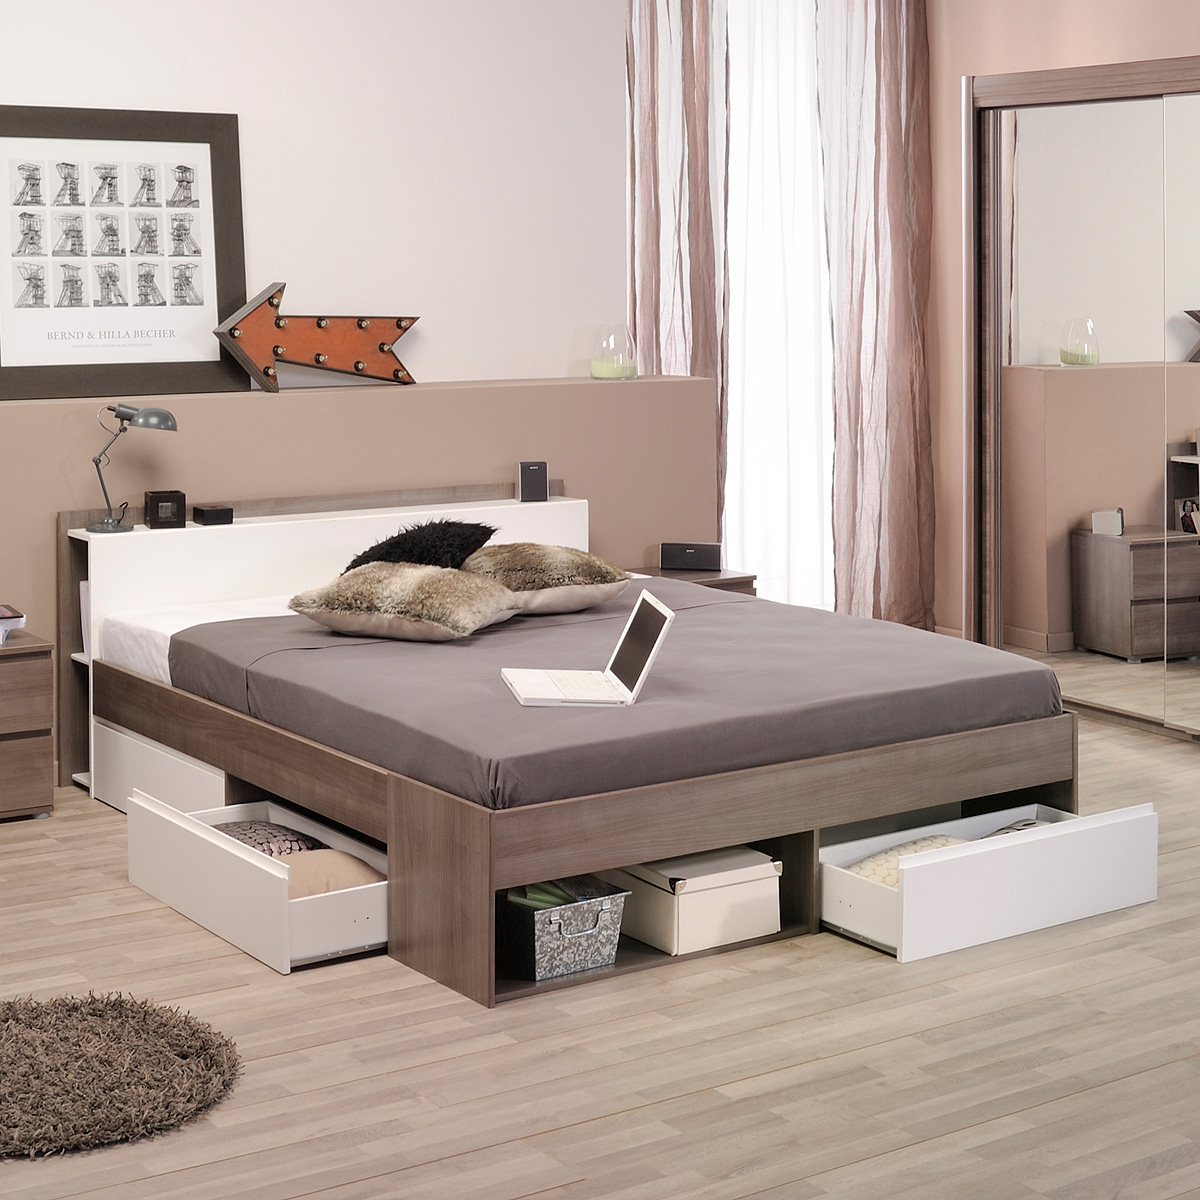 bett most jugendbett einzelliege eiche silber kaffee braun akazie und wei 140 ebay. Black Bedroom Furniture Sets. Home Design Ideas